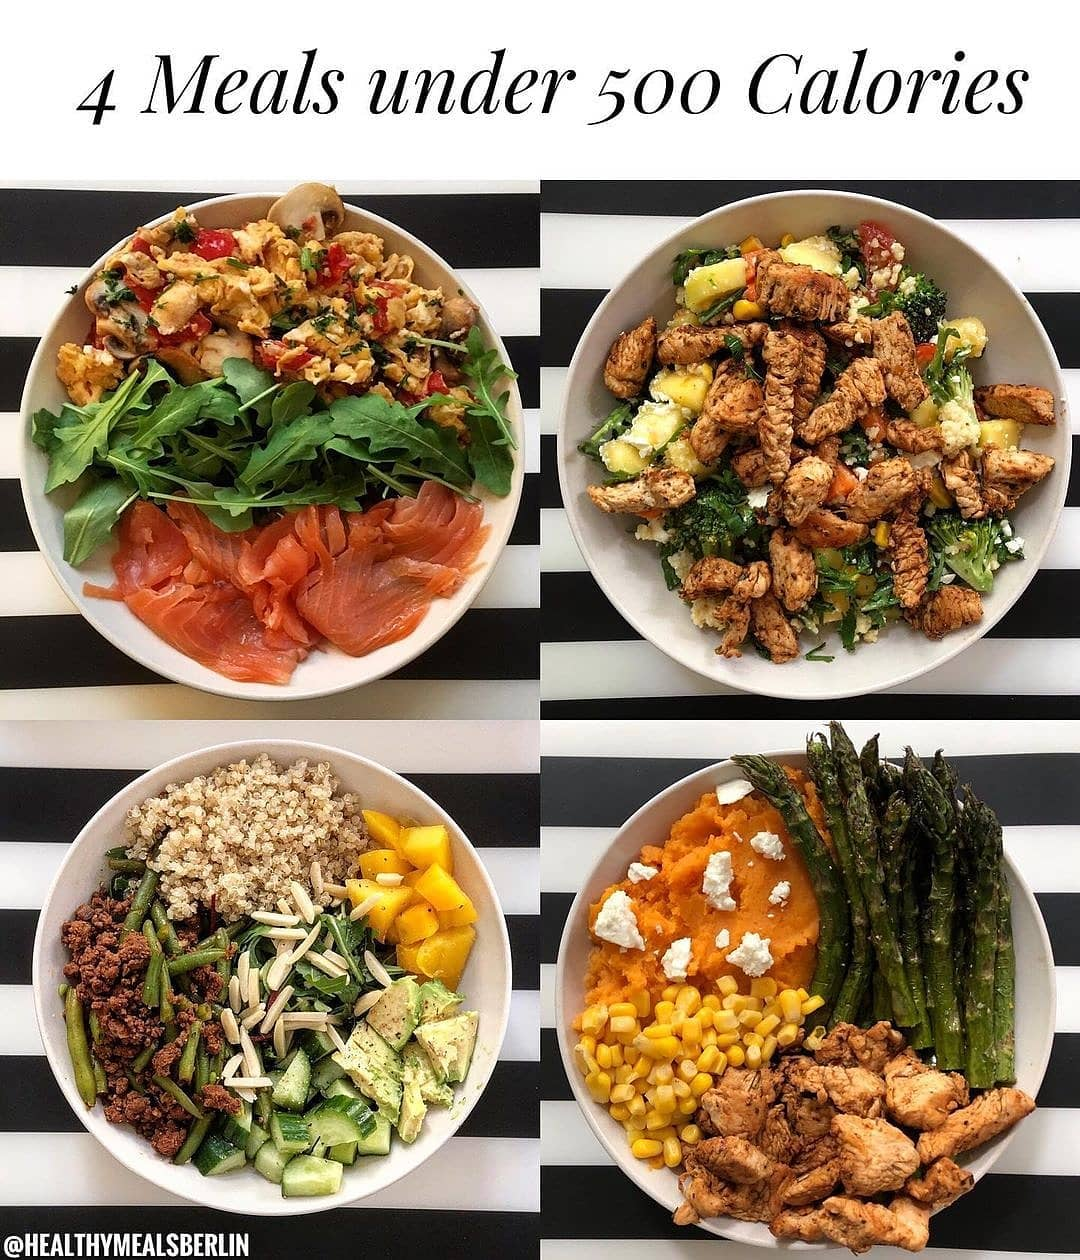 🥑🍅 Get Our New 100+ Delicious Vegan Recipes For Weight